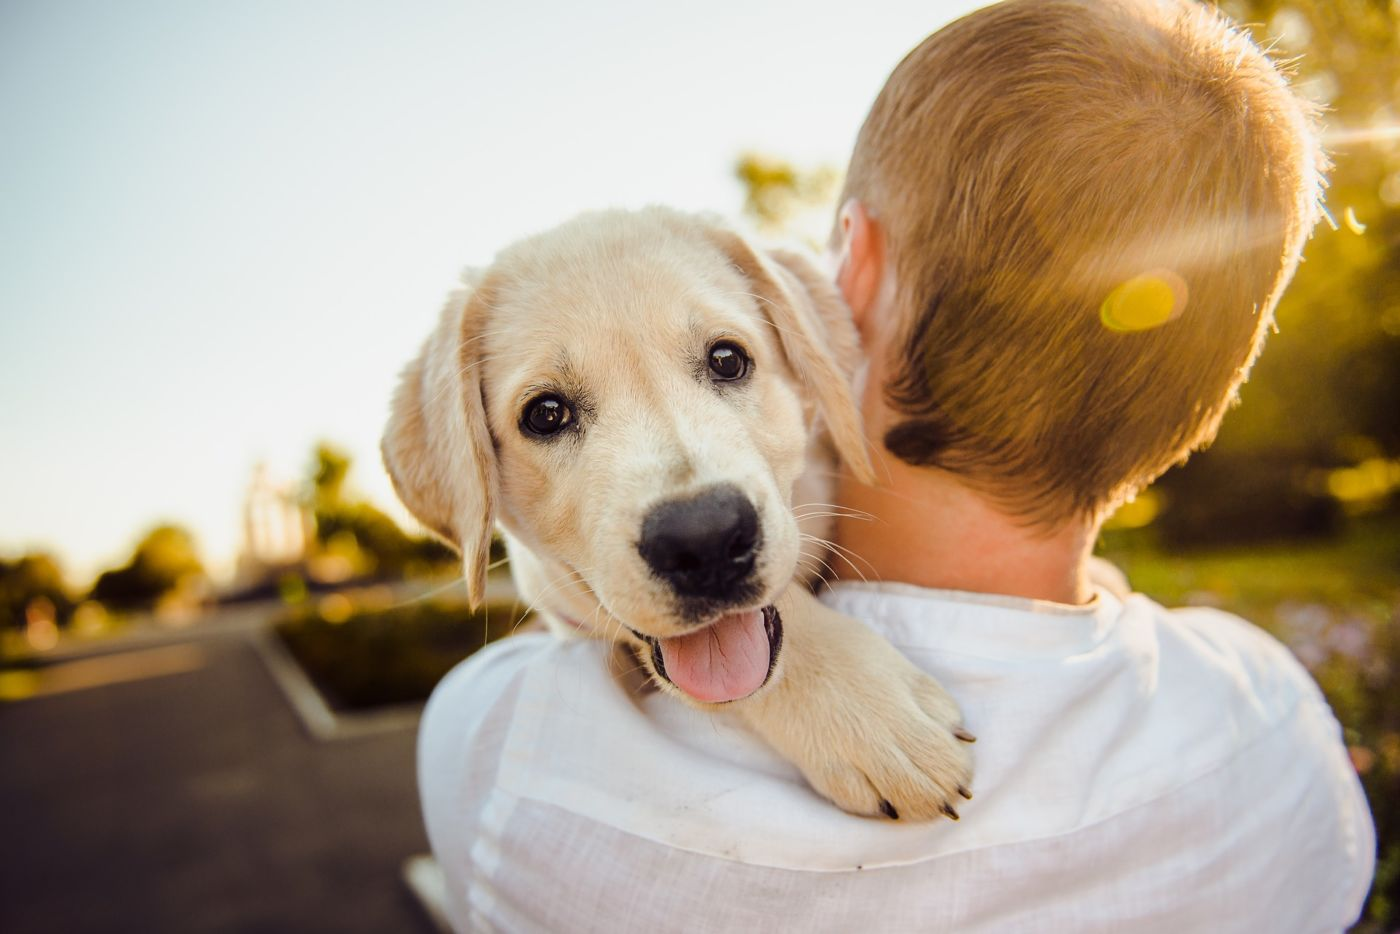 Take your dog to Canine Cove dog park Marco Island    Marco Island    Clausen Properties